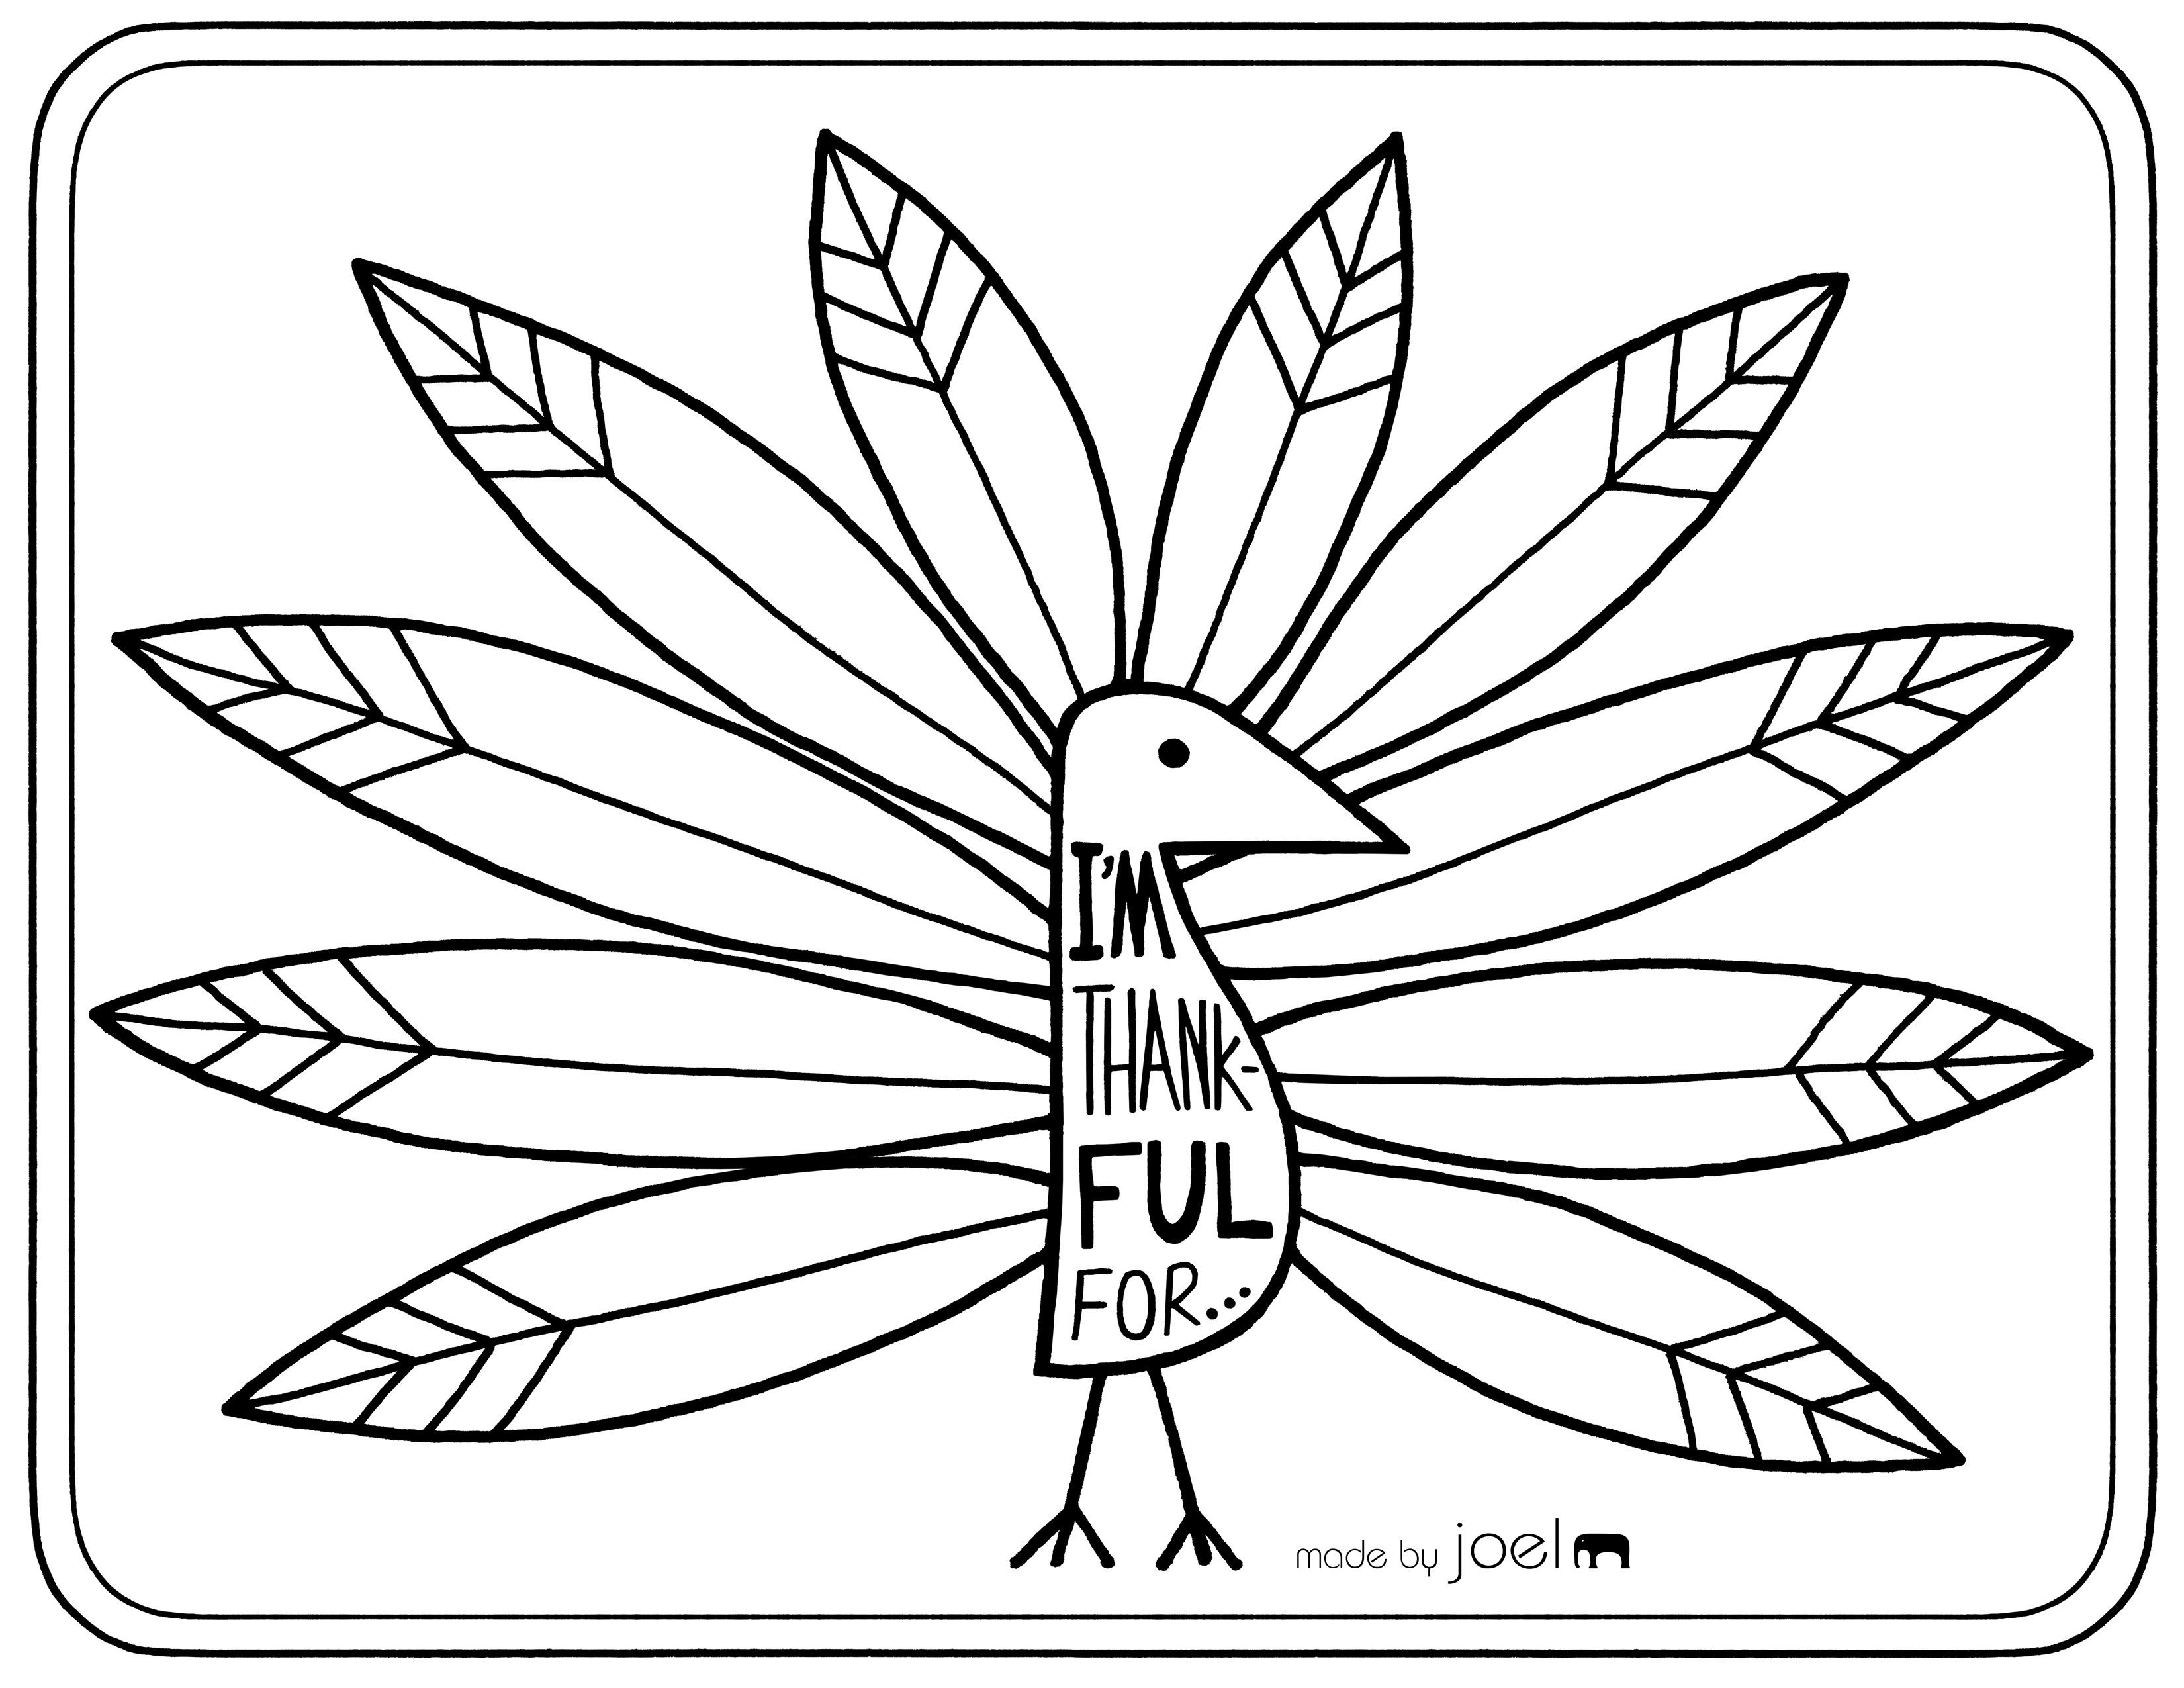 Free Printable Placemat For Giving Thanks   Fall Crafts & Ideas - Free Printable Thanksgiving Coloring Placemats